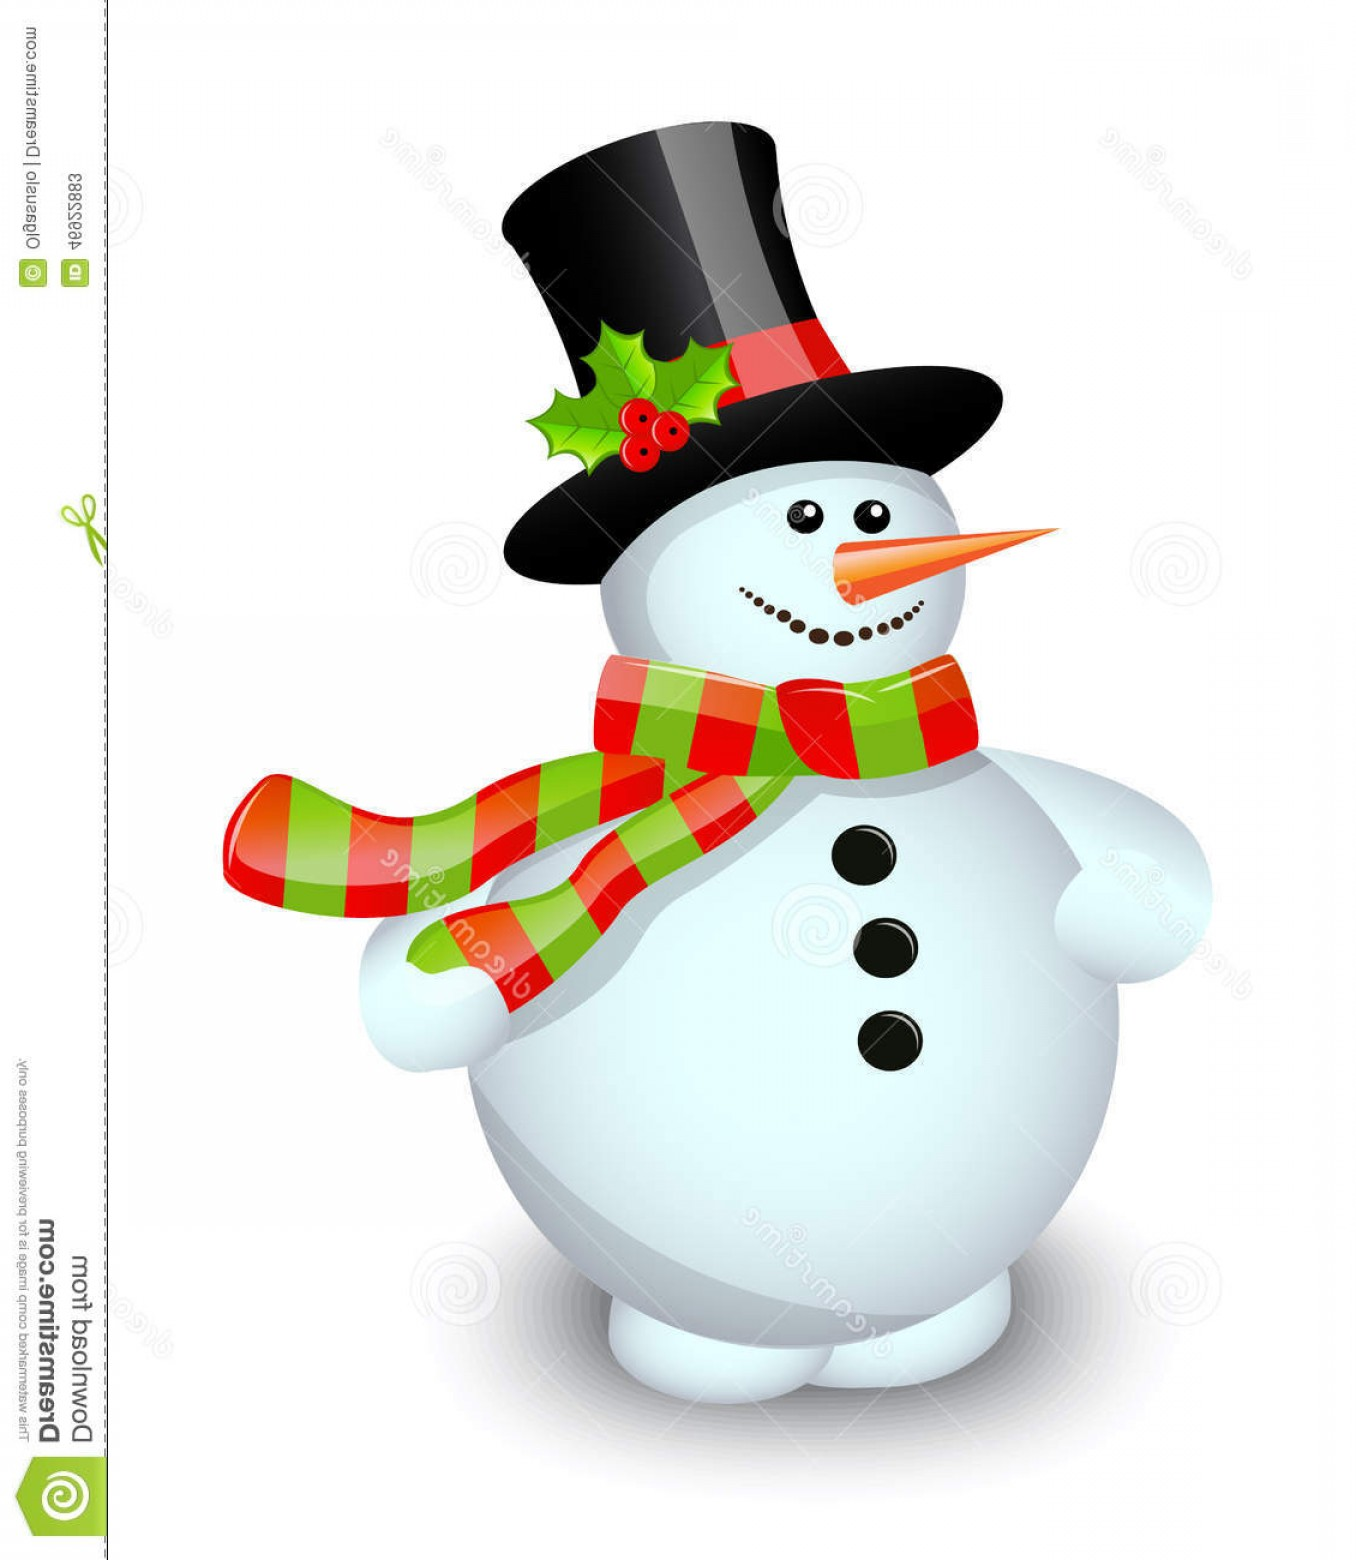 No Hat With Snowman Vector: Stock Illustration Snowman White Background Striped Scarf Hat Decorated Berries Image